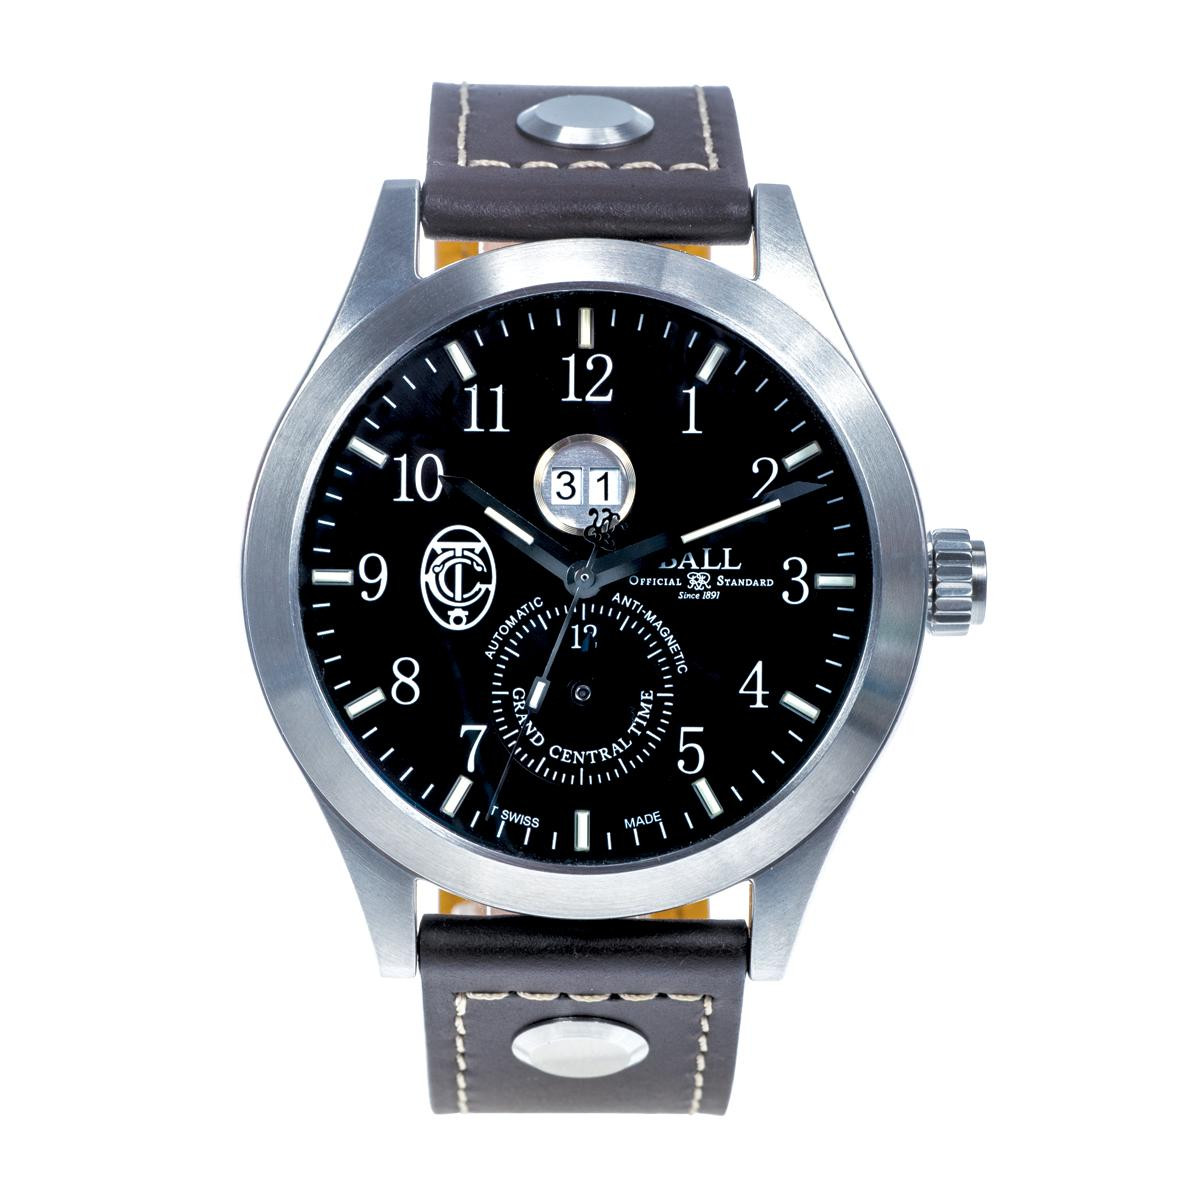 New Ball Engineer Master II GCT Dual Time